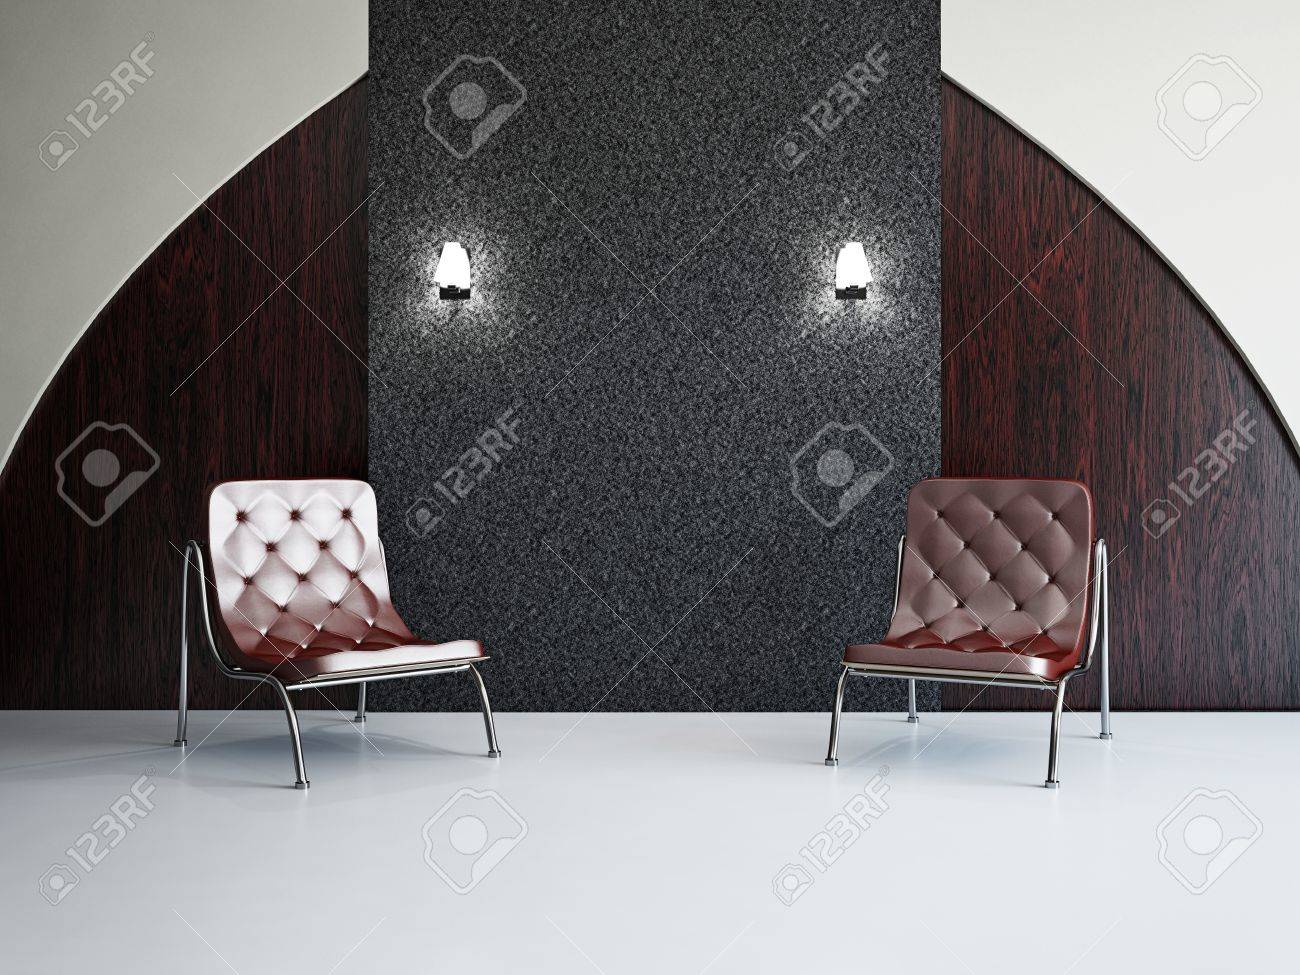 Livingroom with chairs near the wall Stock Photo - 18763131